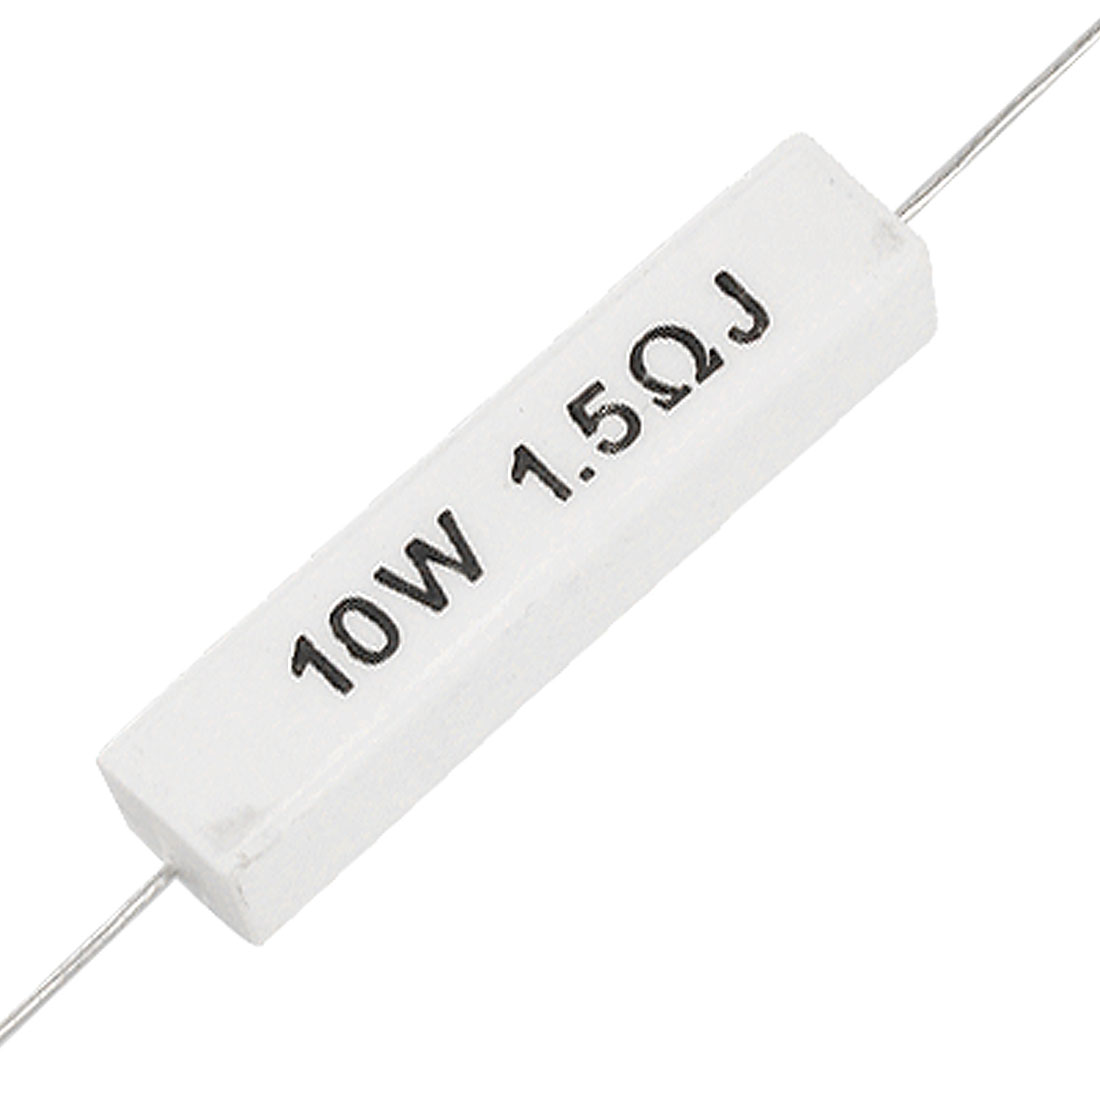 5x Axial Lead Ceramic Cement Resistors 1.5 ohm 1R5 10W 5%